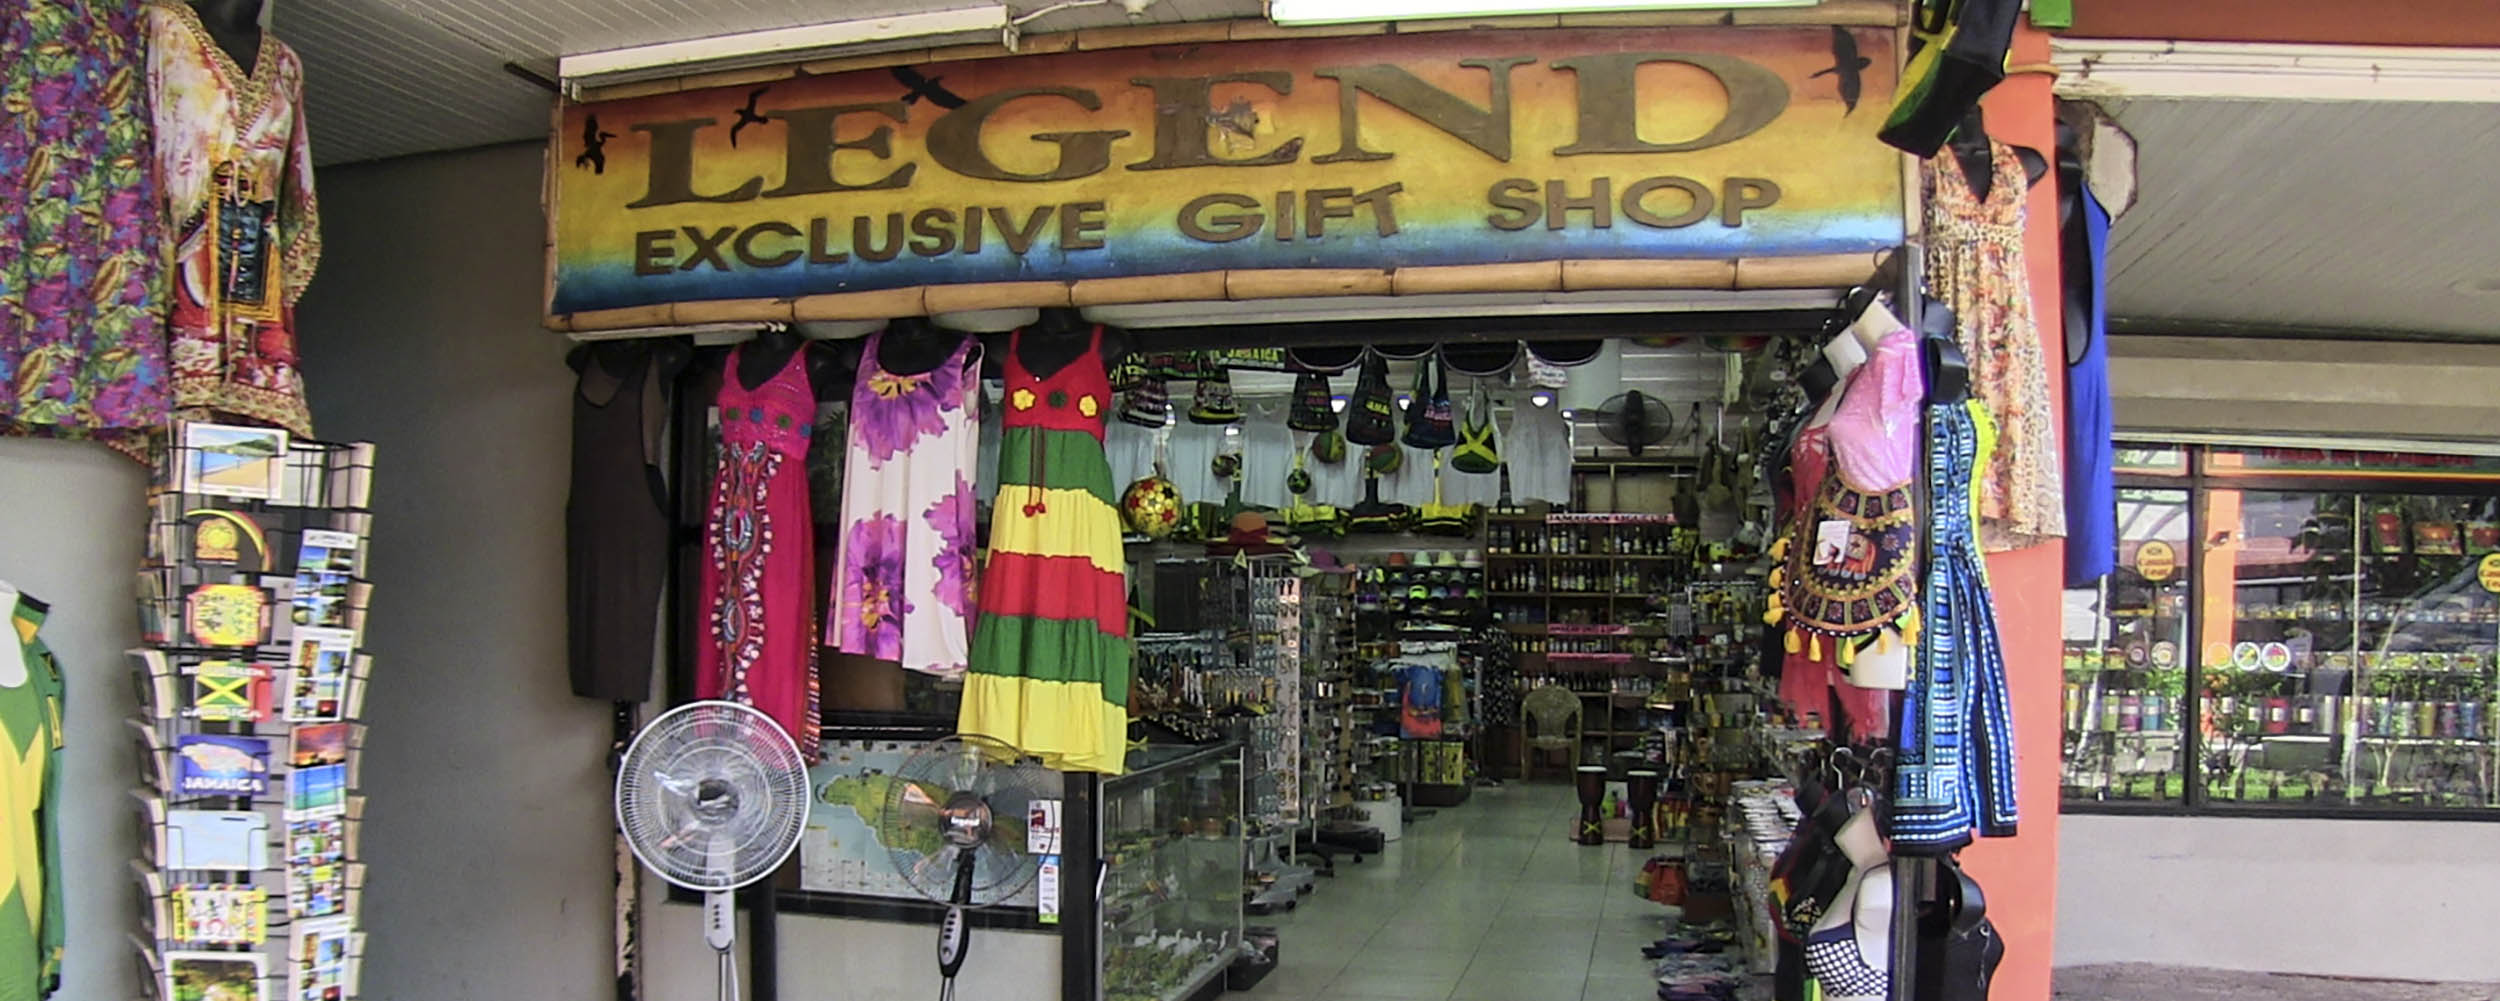 Legend's Exclusive Gift Shop - Sunshine Village Complex - Negril Jamaica